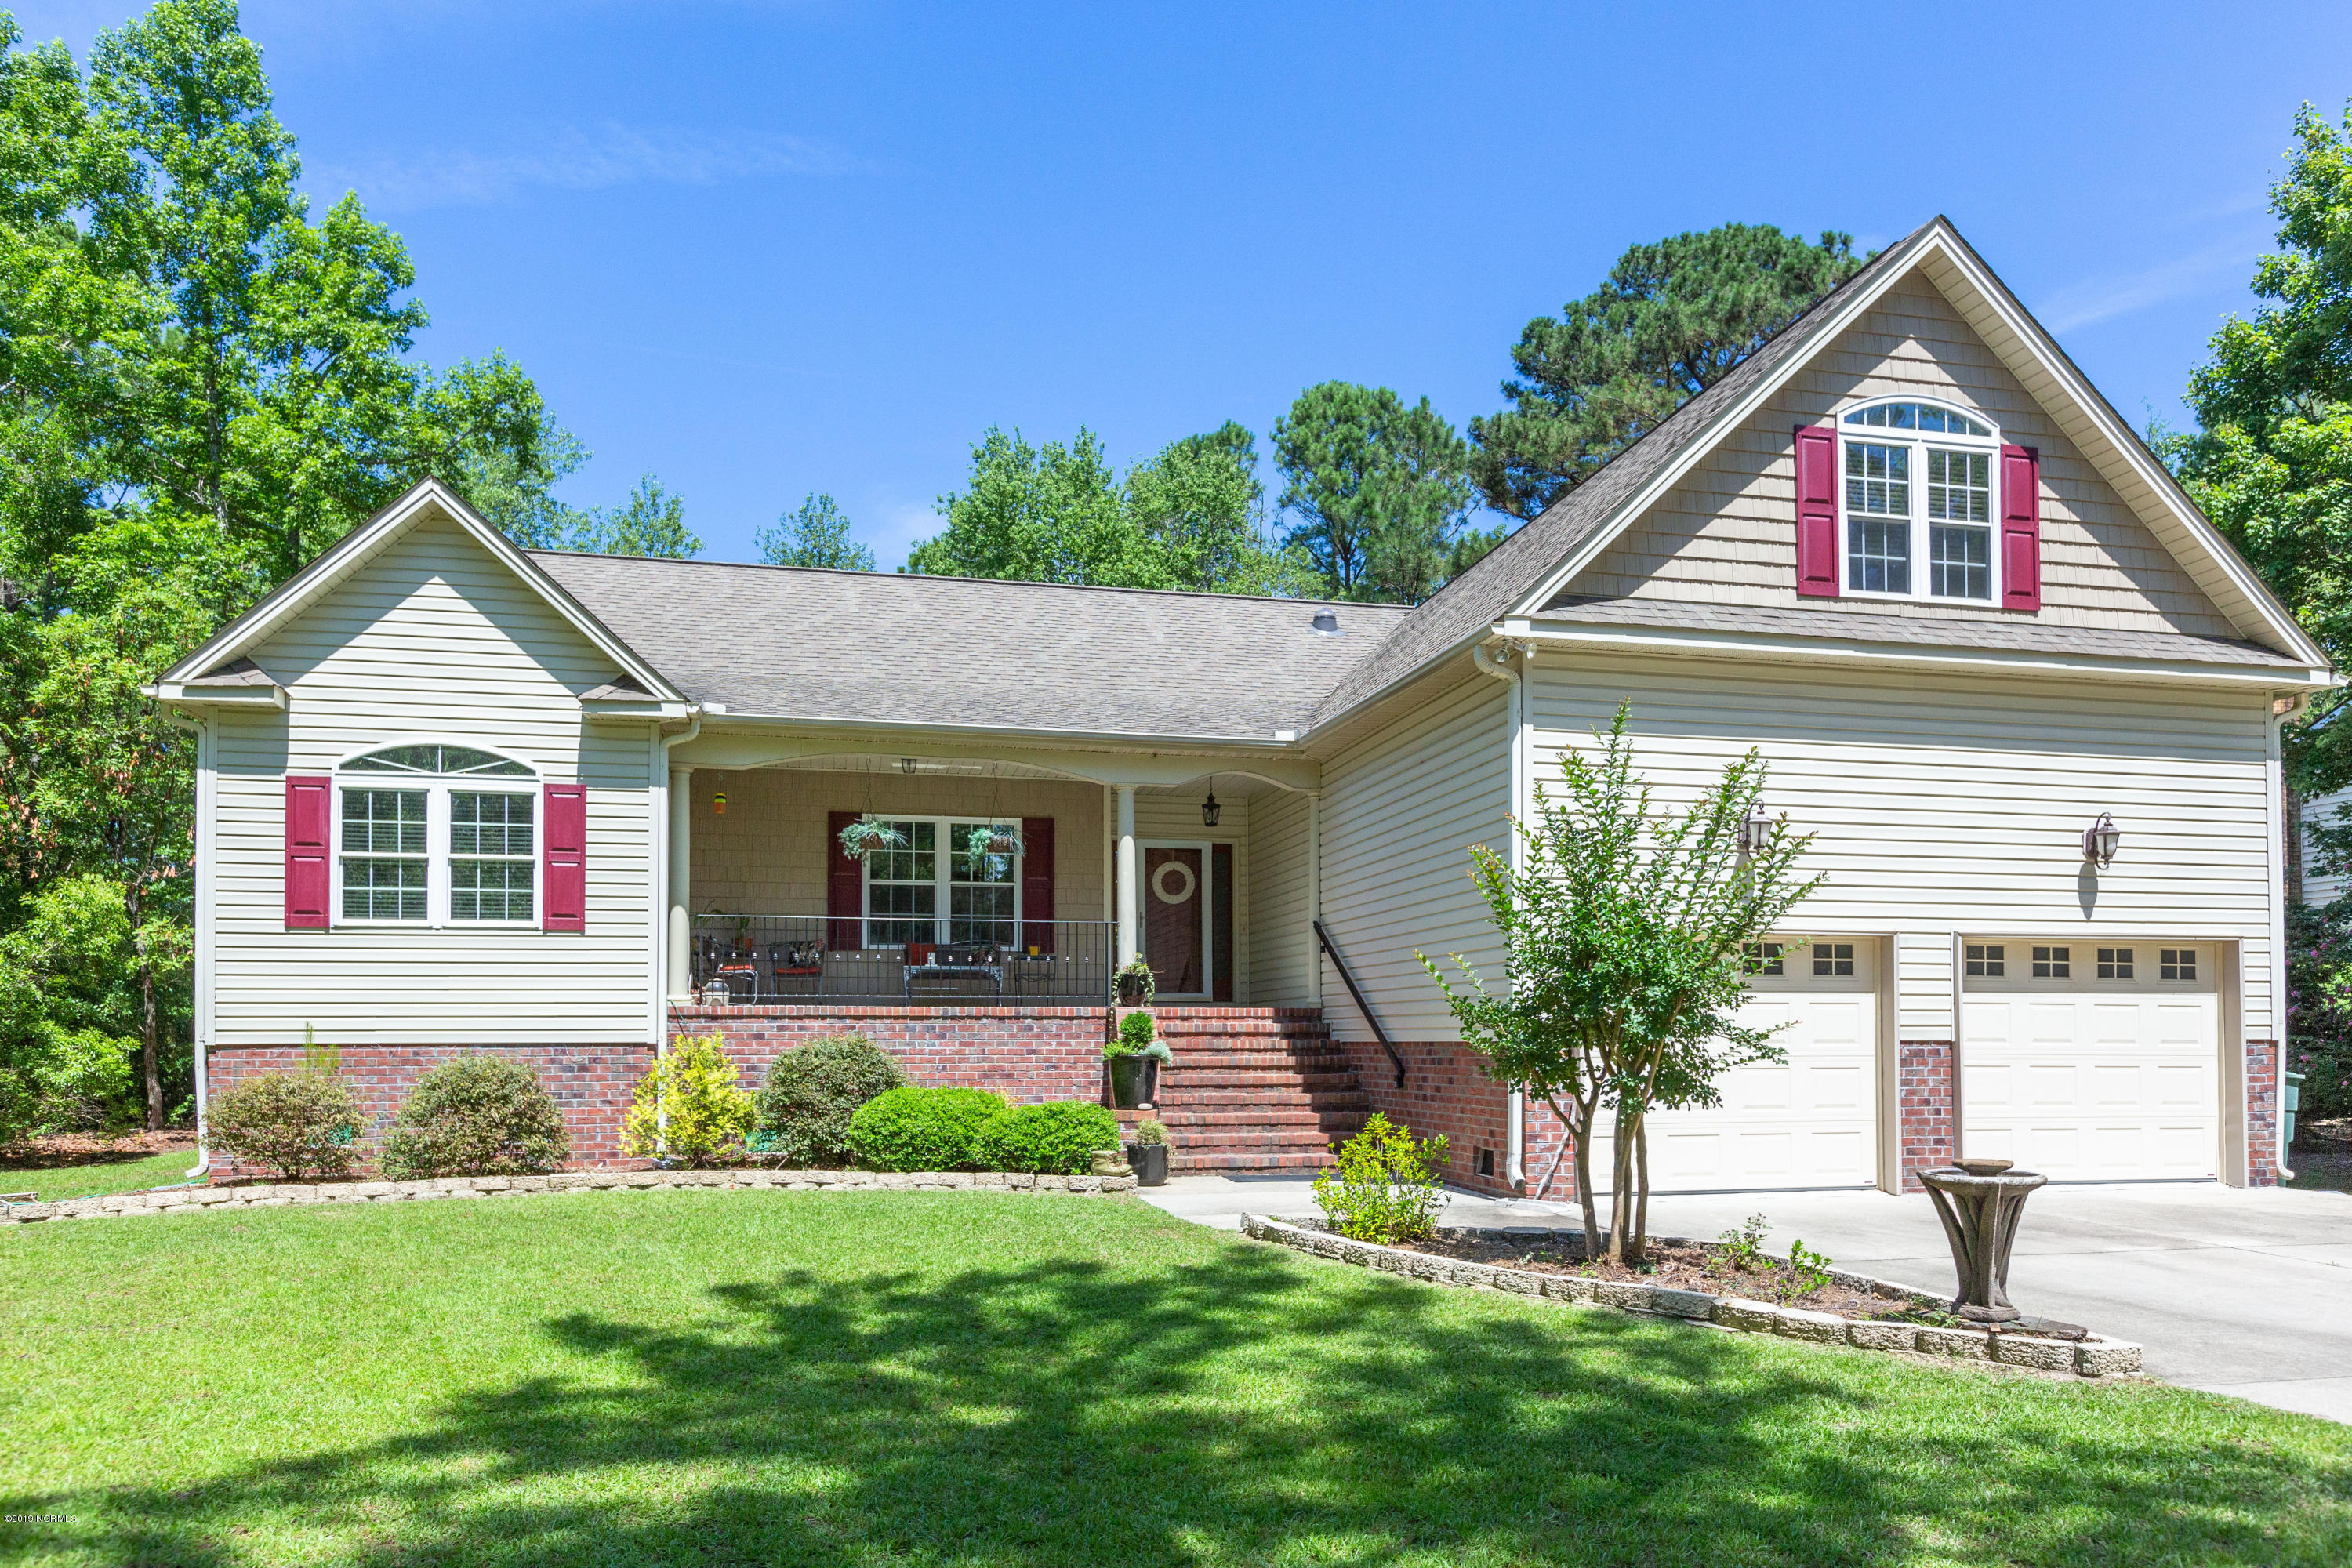 1023 Harbour Pointe Drive, New Bern, North Carolina, 3 Bedrooms Bedrooms, 10 Rooms Rooms,2 BathroomsBathrooms,Single family residence,For sale,Harbour Pointe,100171149